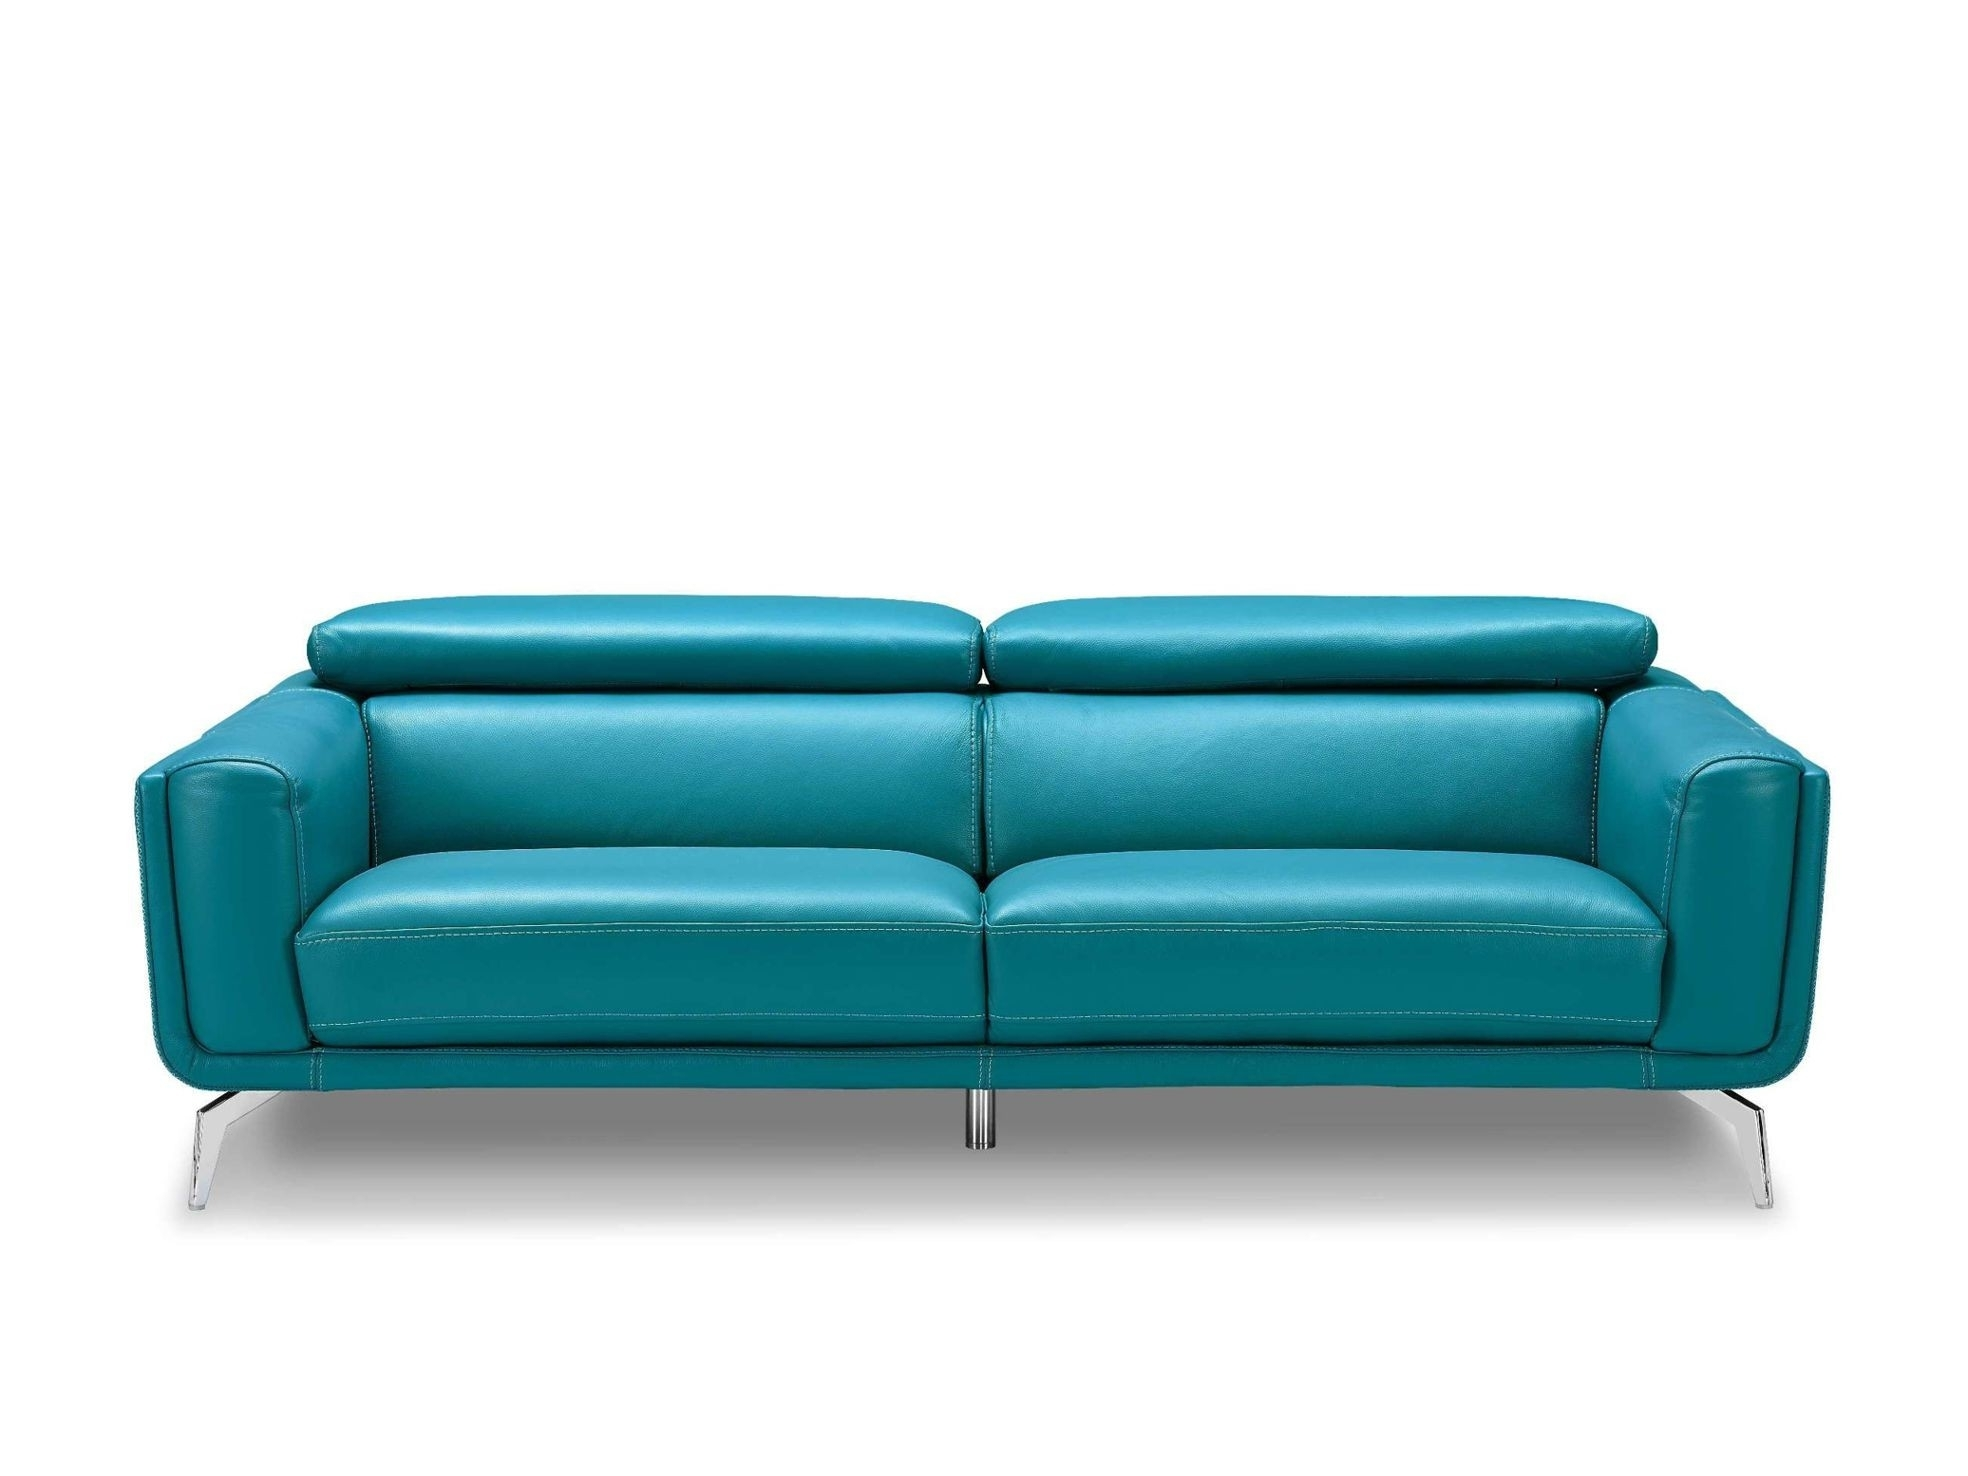 Famous Contemporary Sofas And Chairs For Contemporary Sofas And Chairs Tags : Modern Sofa Recliner Modern (View 7 of 15)